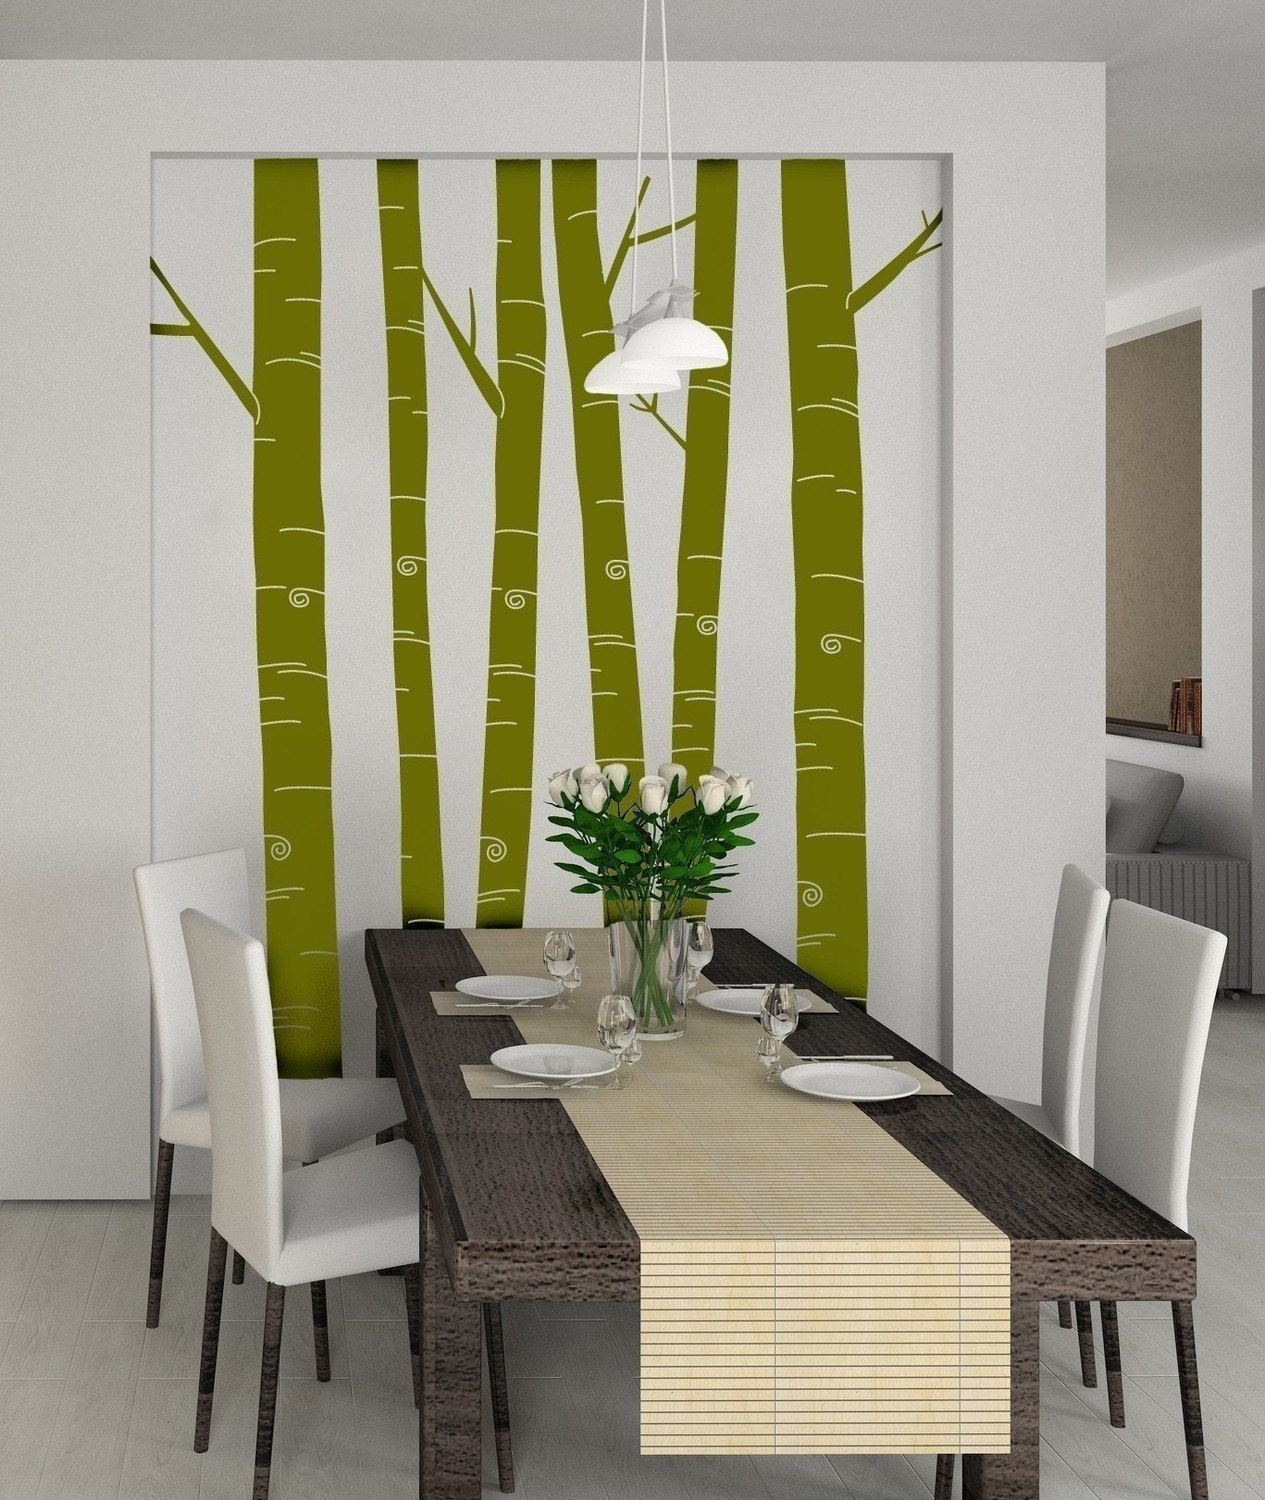 Tall Aspen Trees - Set of 6 - item 30030